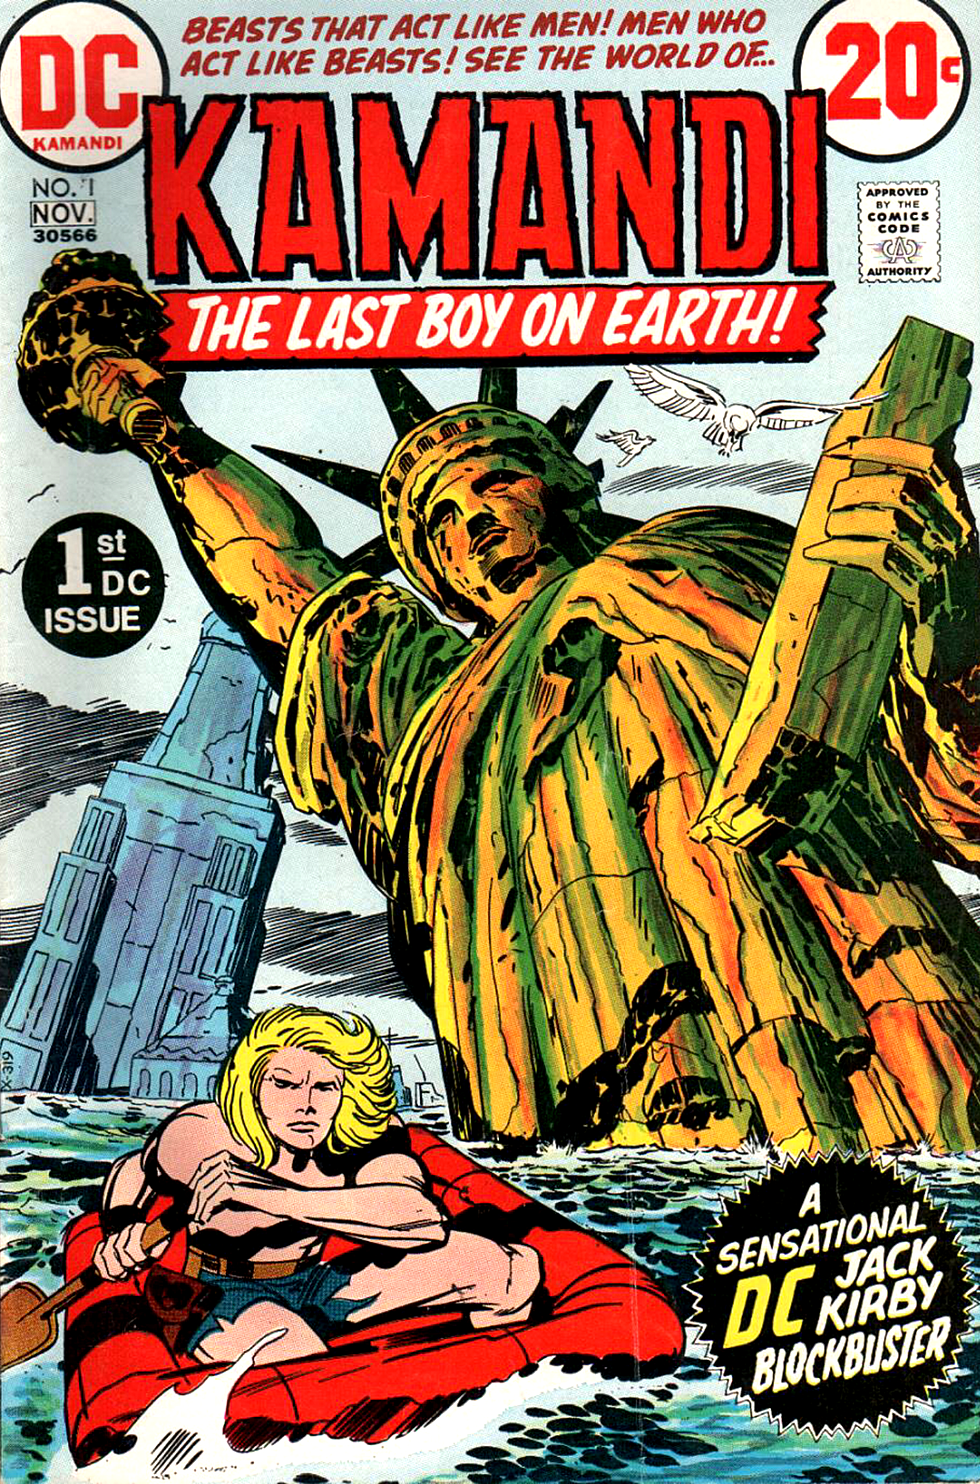 Kamandi No. 1, cover by Jack Kirby and inked by Mike Royer. The start of Kirby's longest running 70s title.